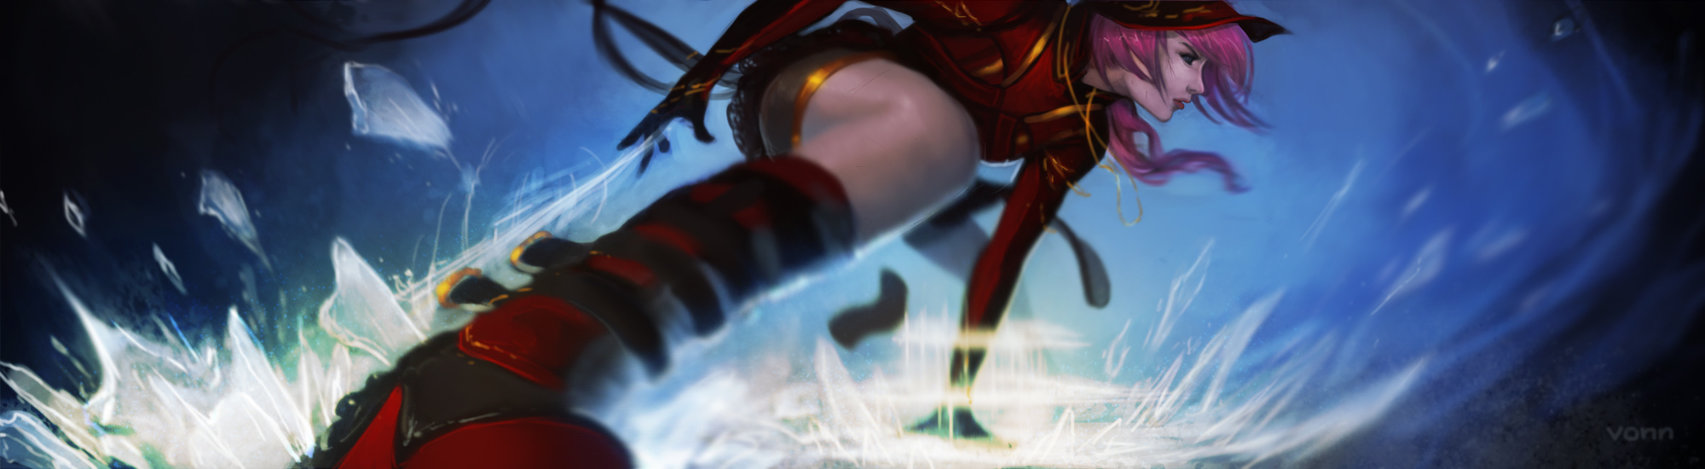 lightning_contest___red_ranger_by_tvonn9-d763x2k